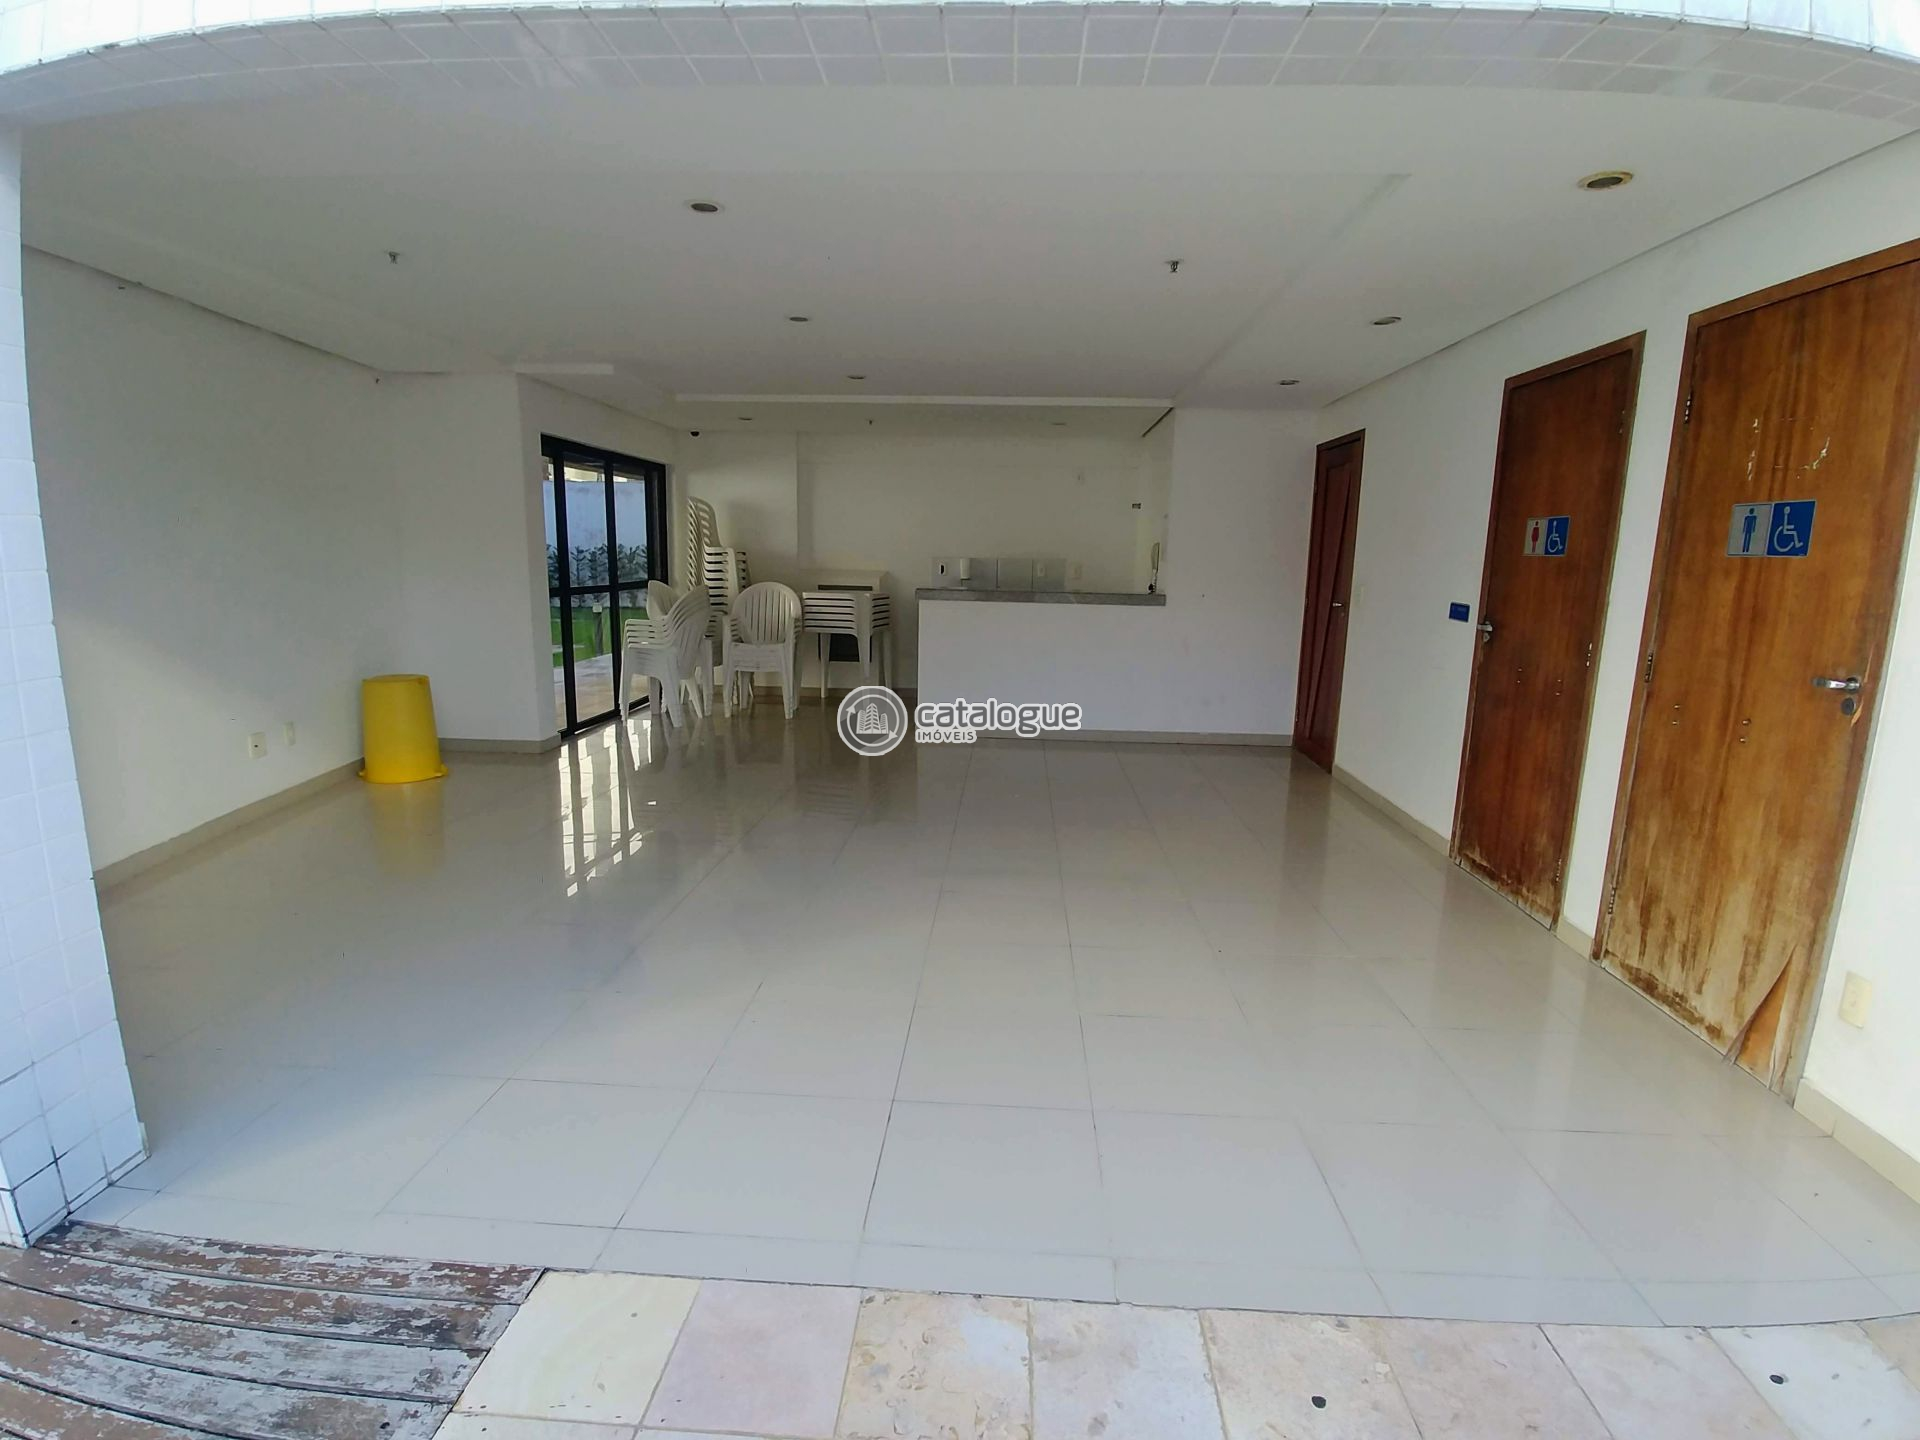 FOTO 19 - Residencial Lincoln - 0661 - 7